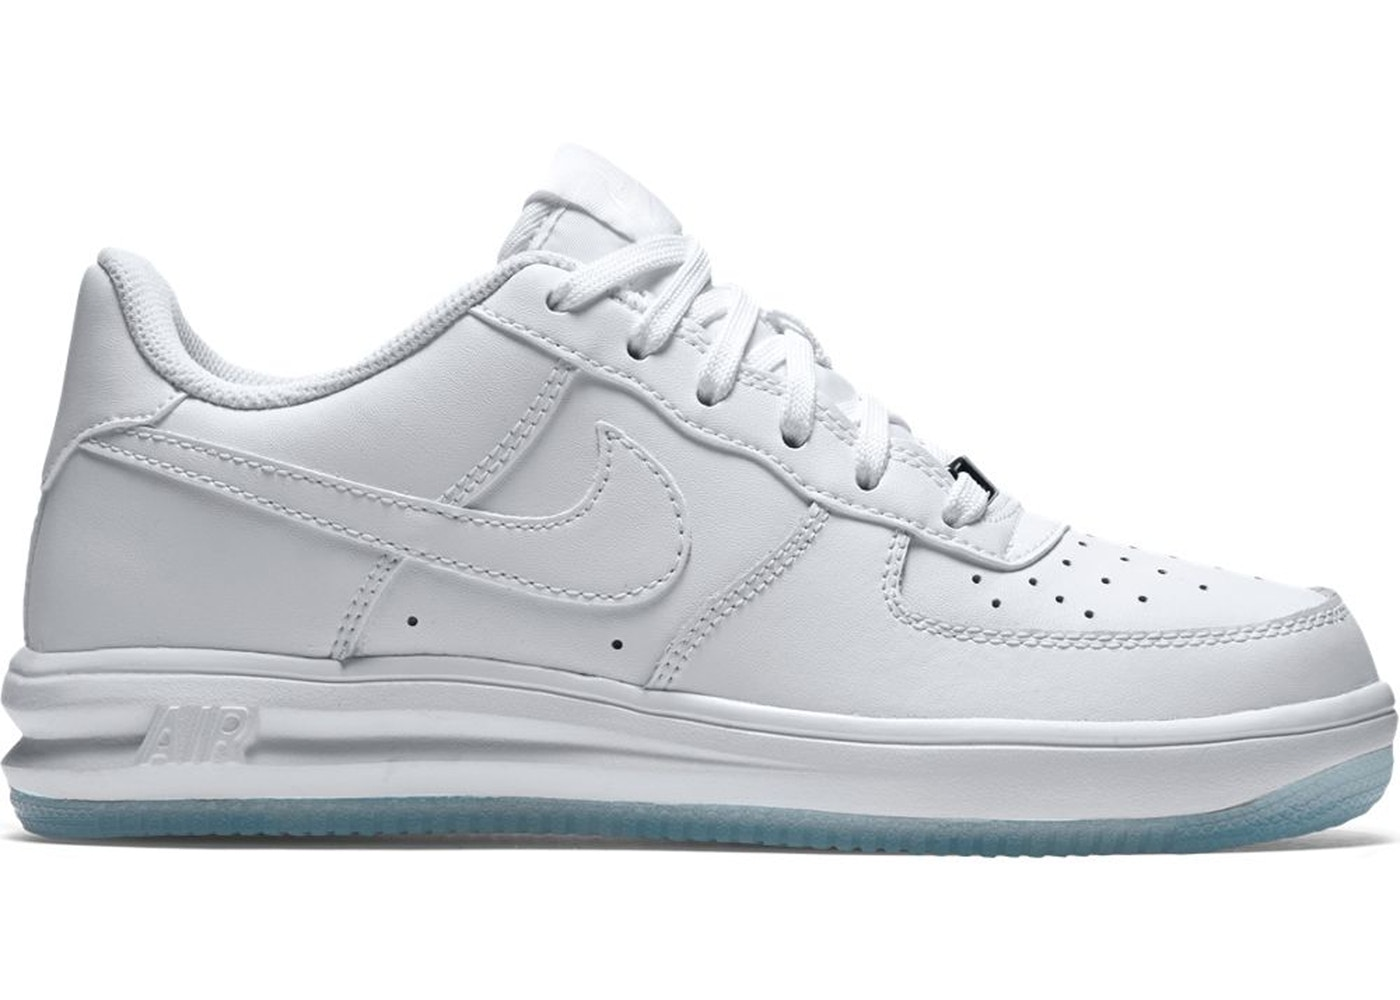 Nike Lunar Force 1 Low White Ice (GS) - 820343-100